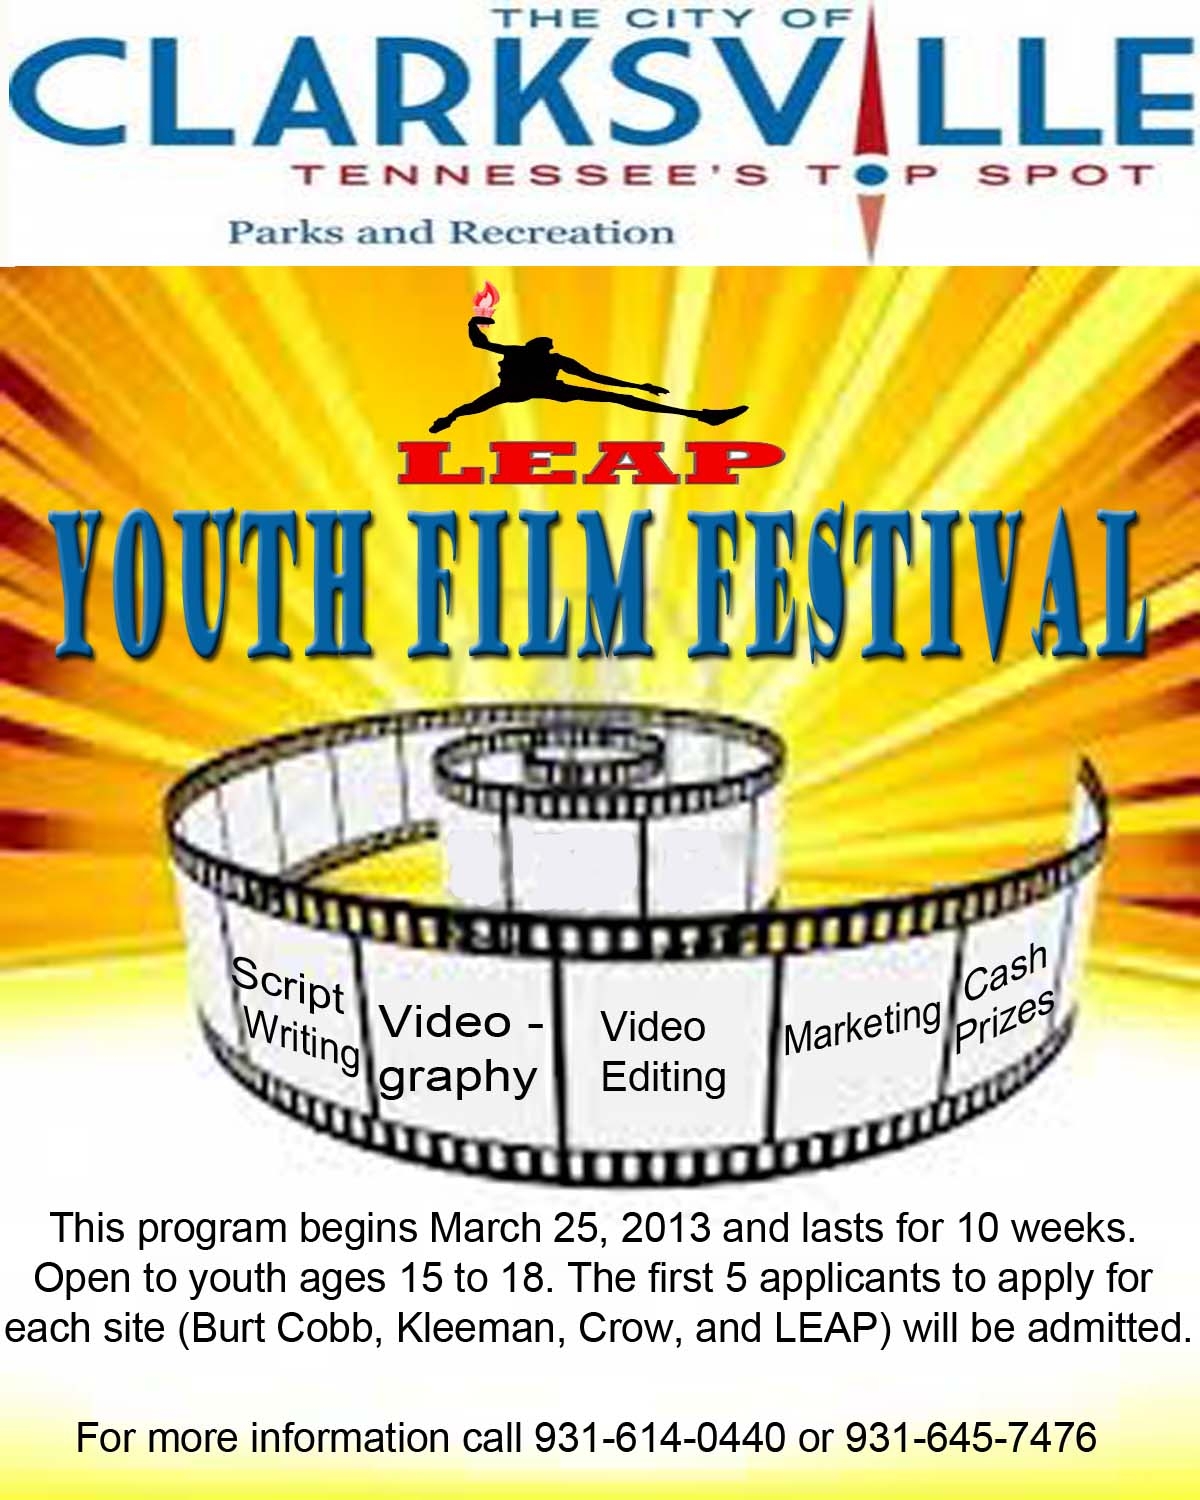 st annual youth film festival clarksville tn online clarksville tn the city of clarksville s department of parks recreation along the leap organization have partnered to host a youth film festival